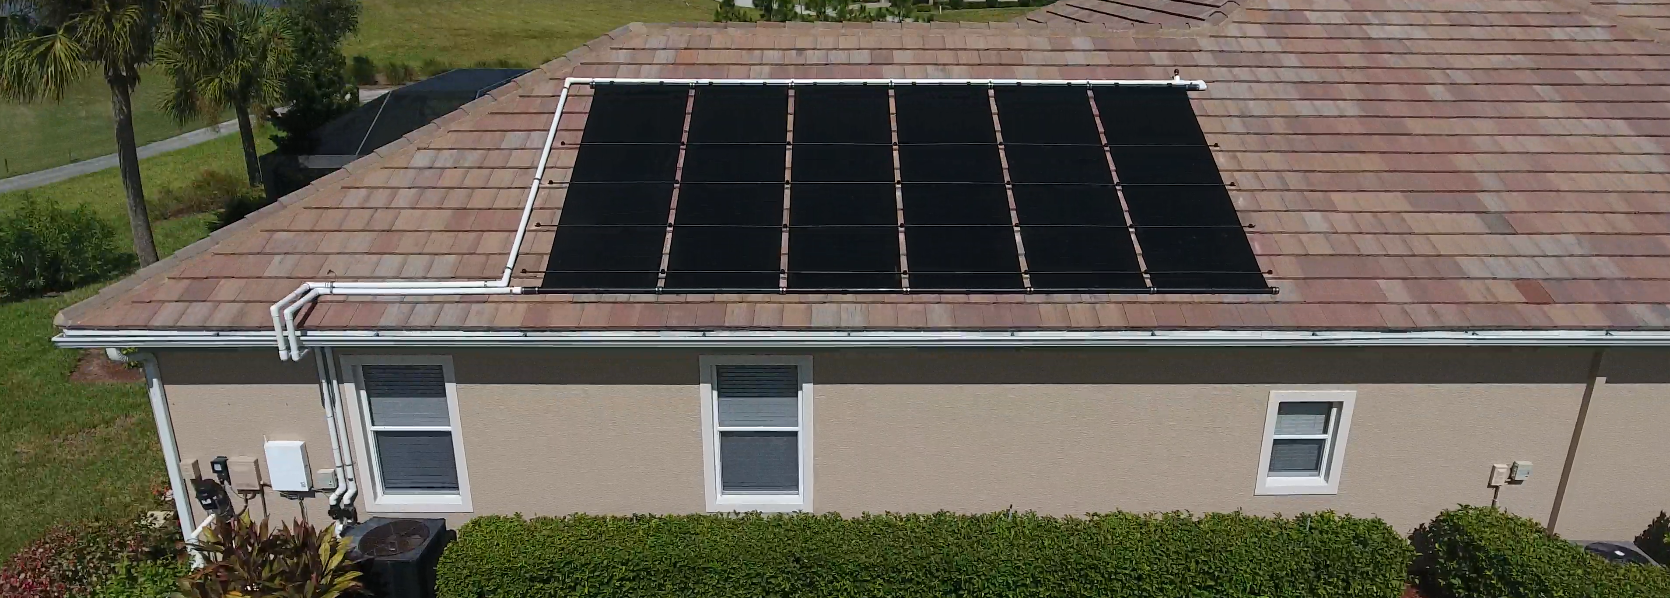 Ground Mounted Solar Pool Heaters Are Not Recommended – Mounting on the Roof is Recommended